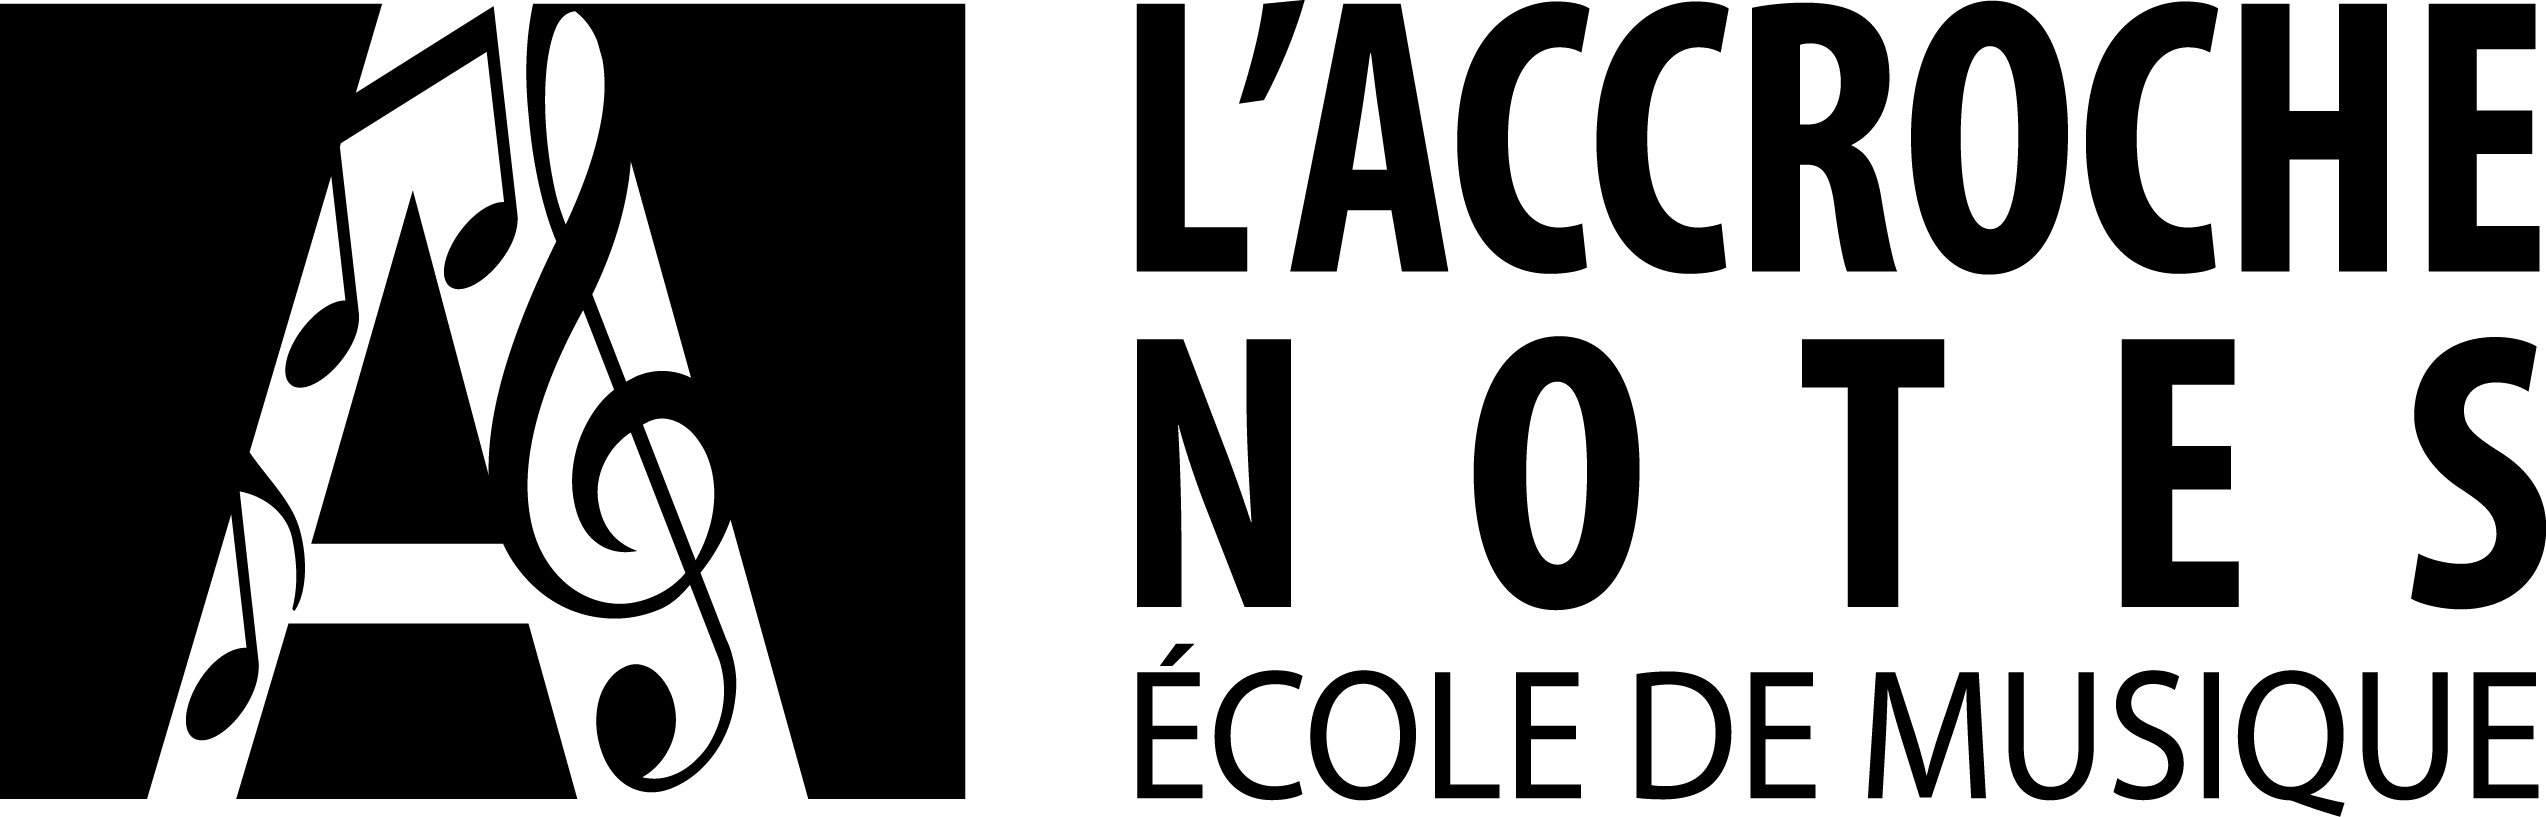 accroche notes logo horizontal noir